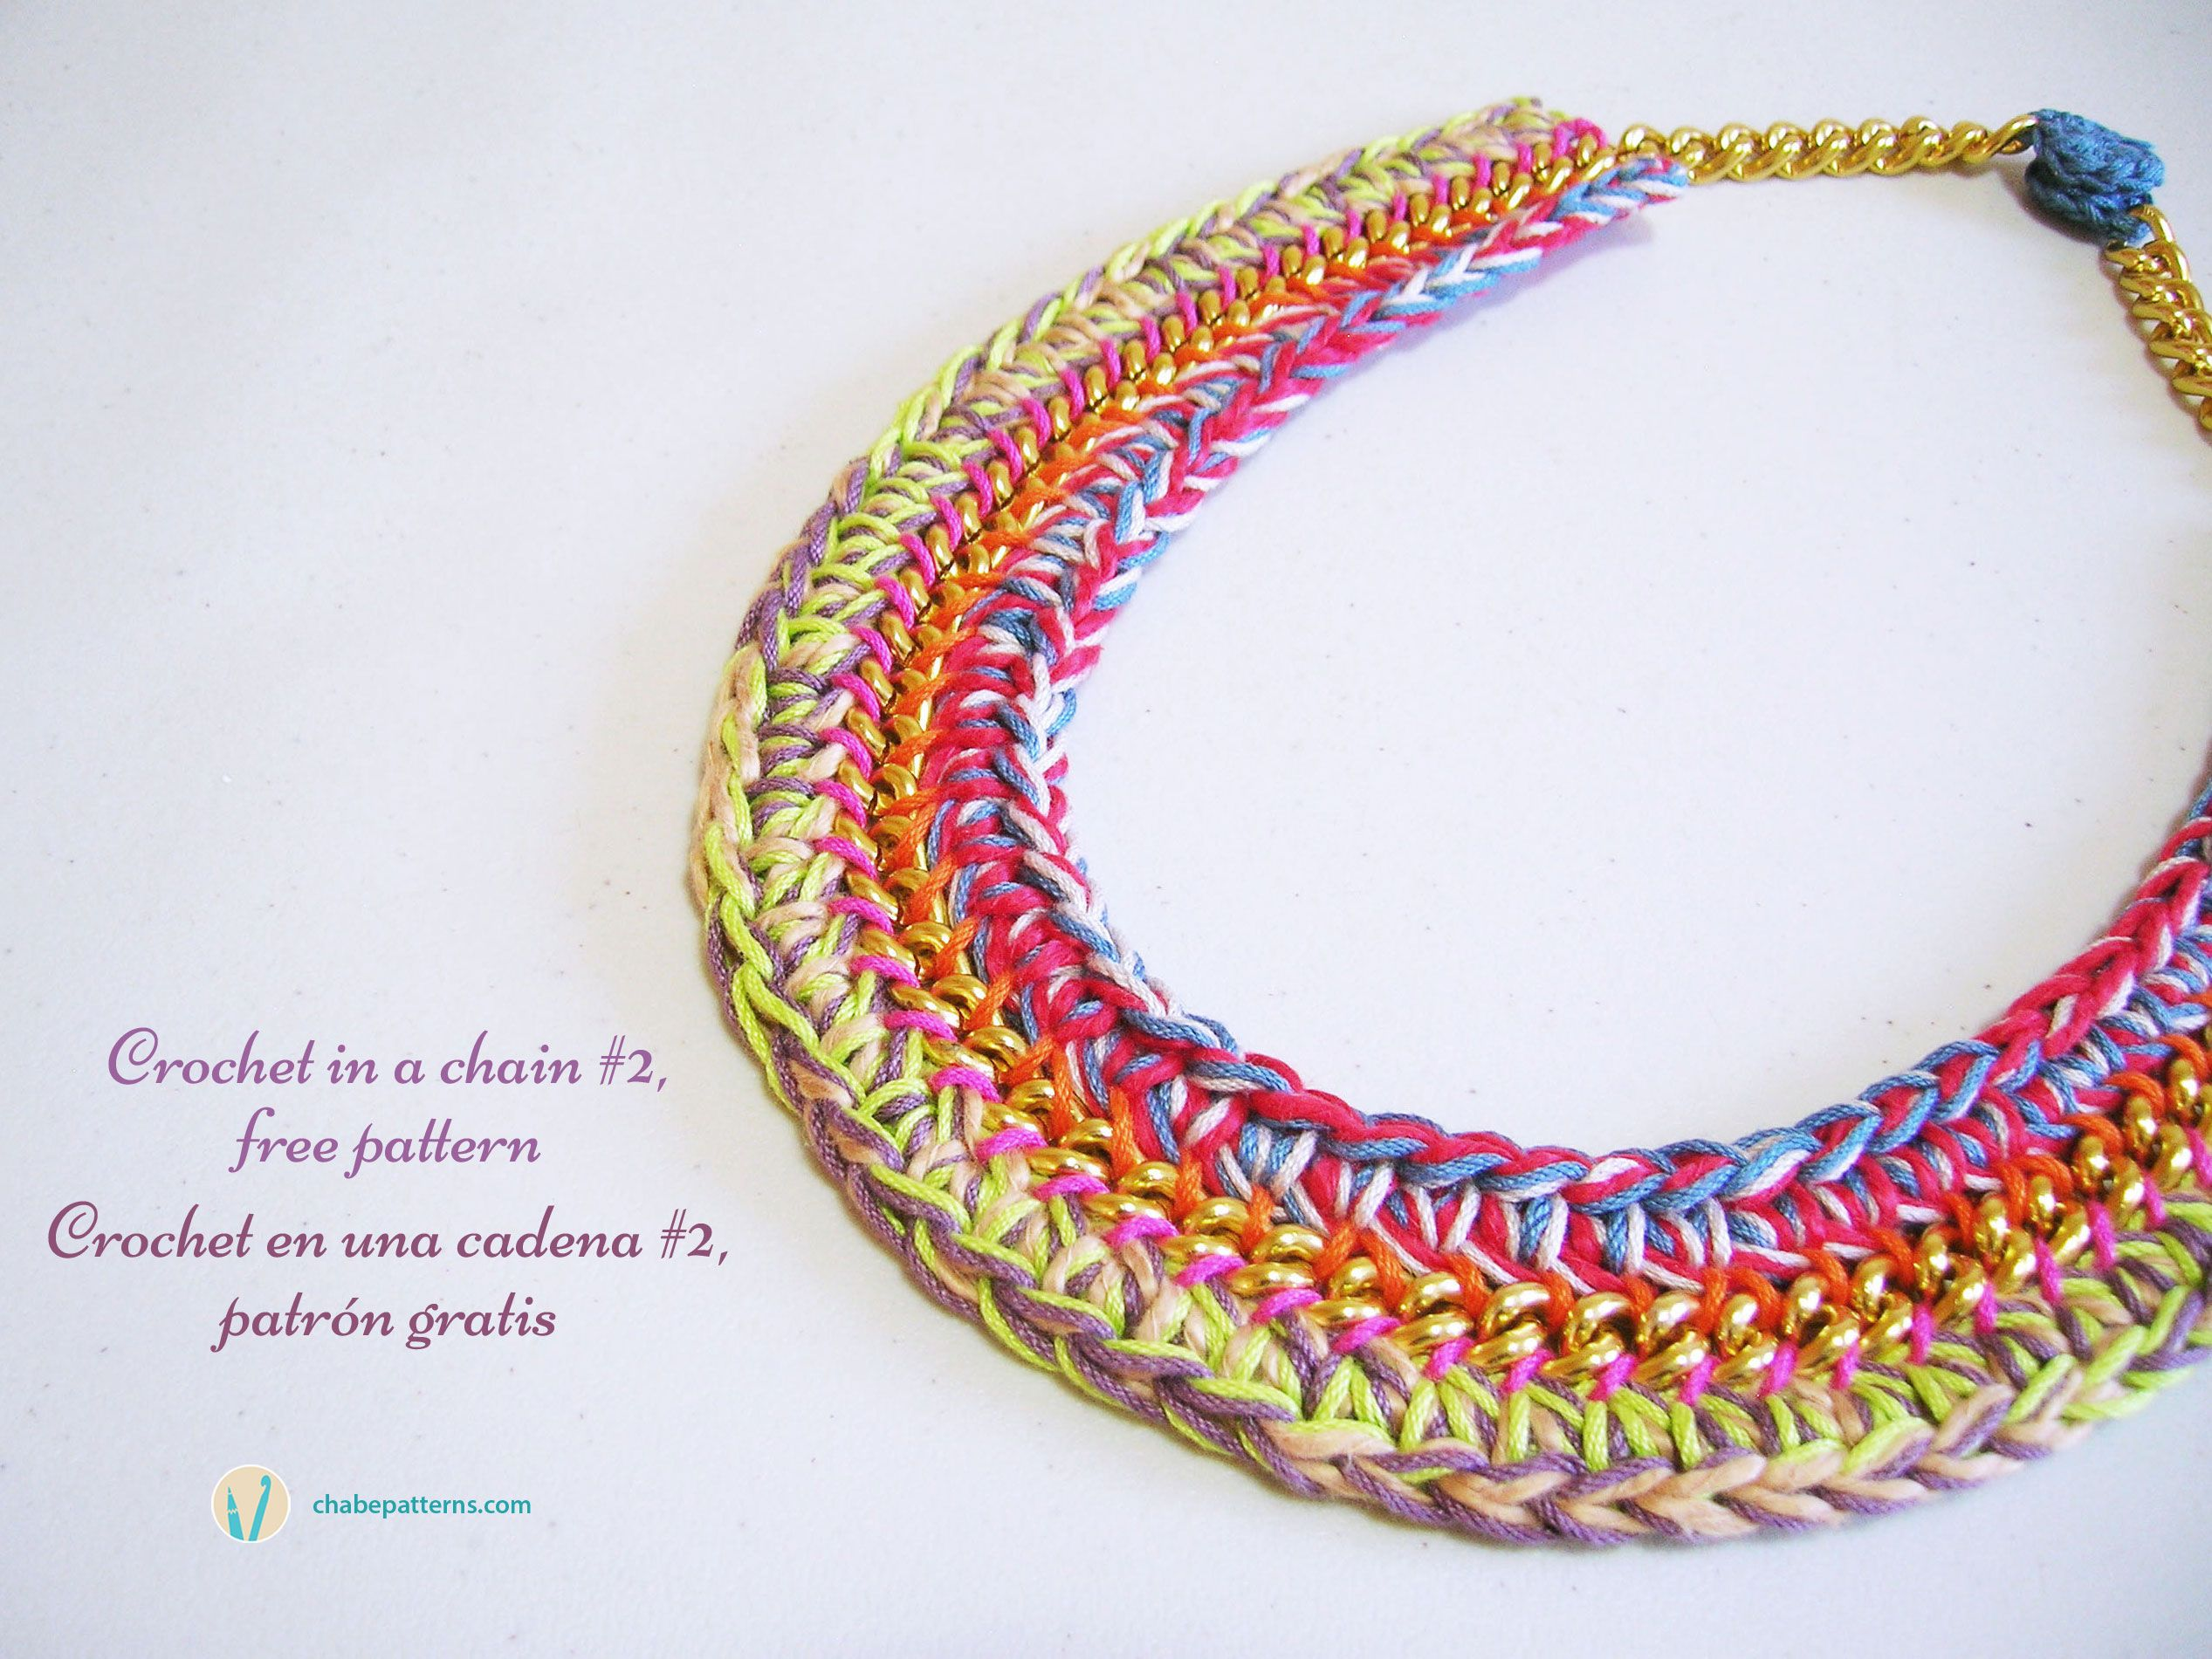 Crochet in a chain #2, free necklace pattern, photo tutorial ...